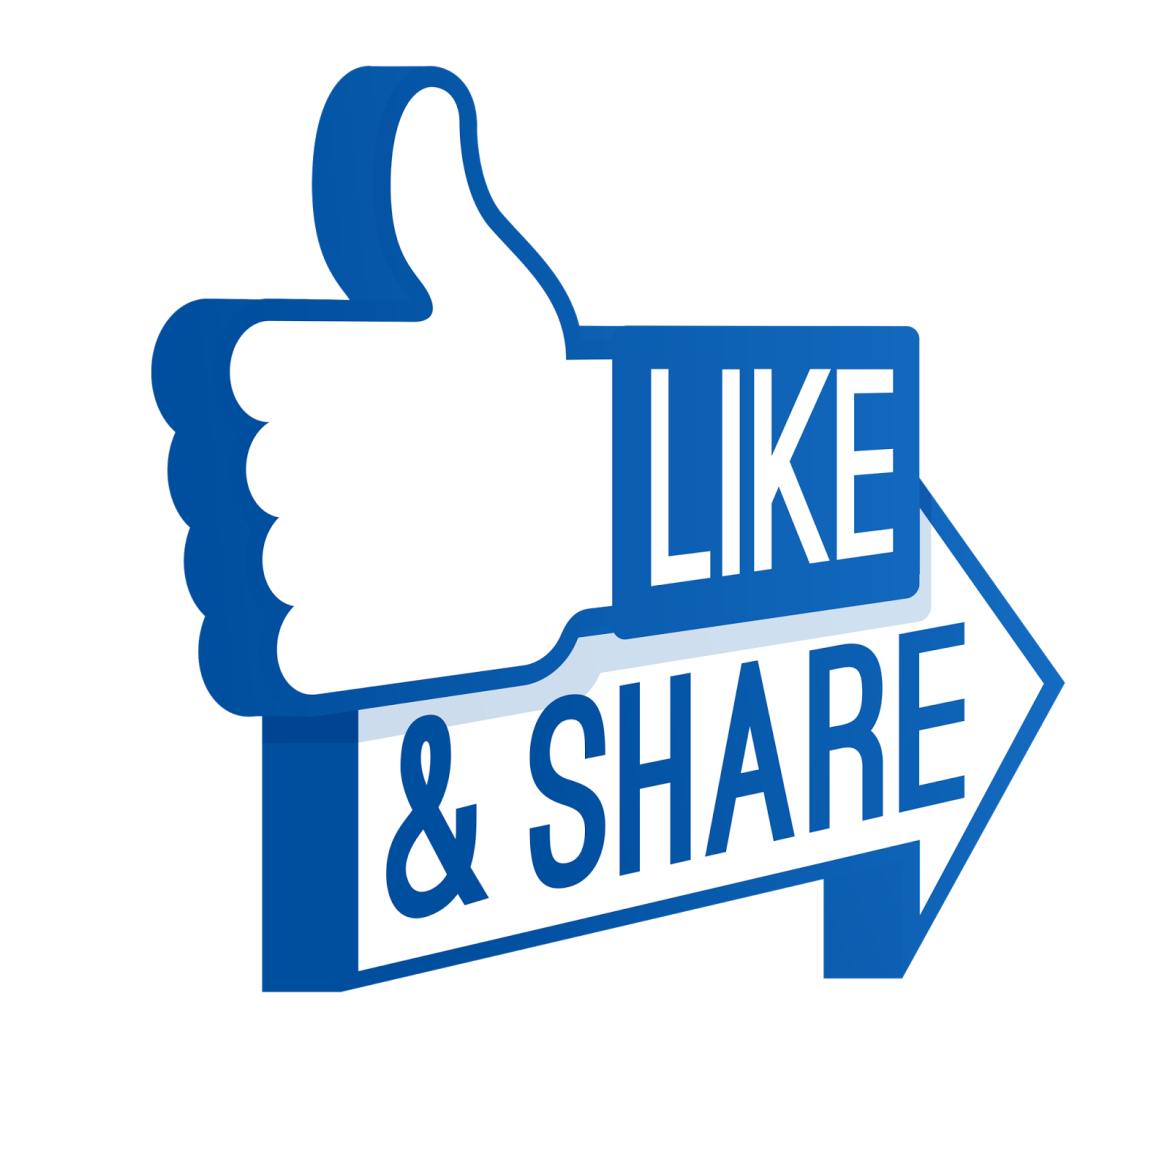 facbook-like-and-share-thumbs-up